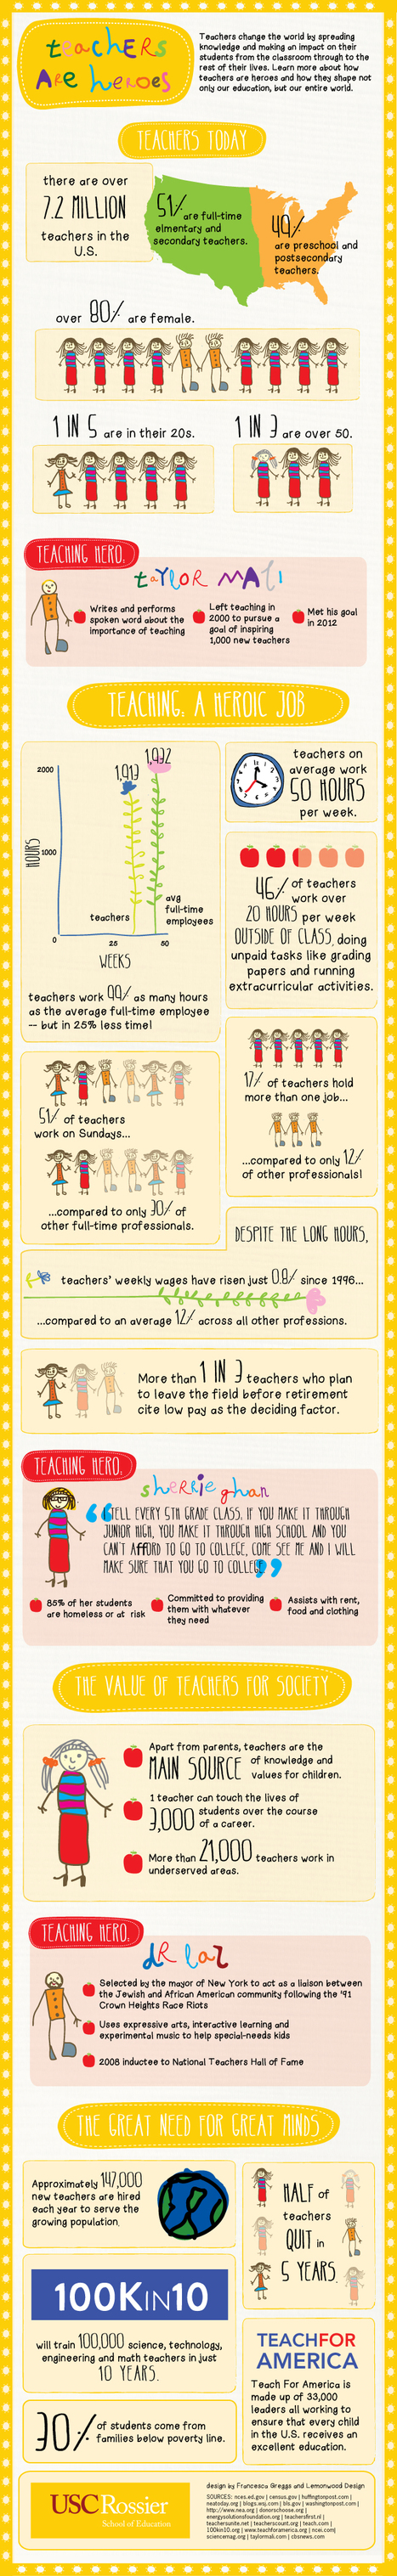 20 Things To Know About The Current State Of Teaching [Infographic] | Wepyirang | Scoop.it